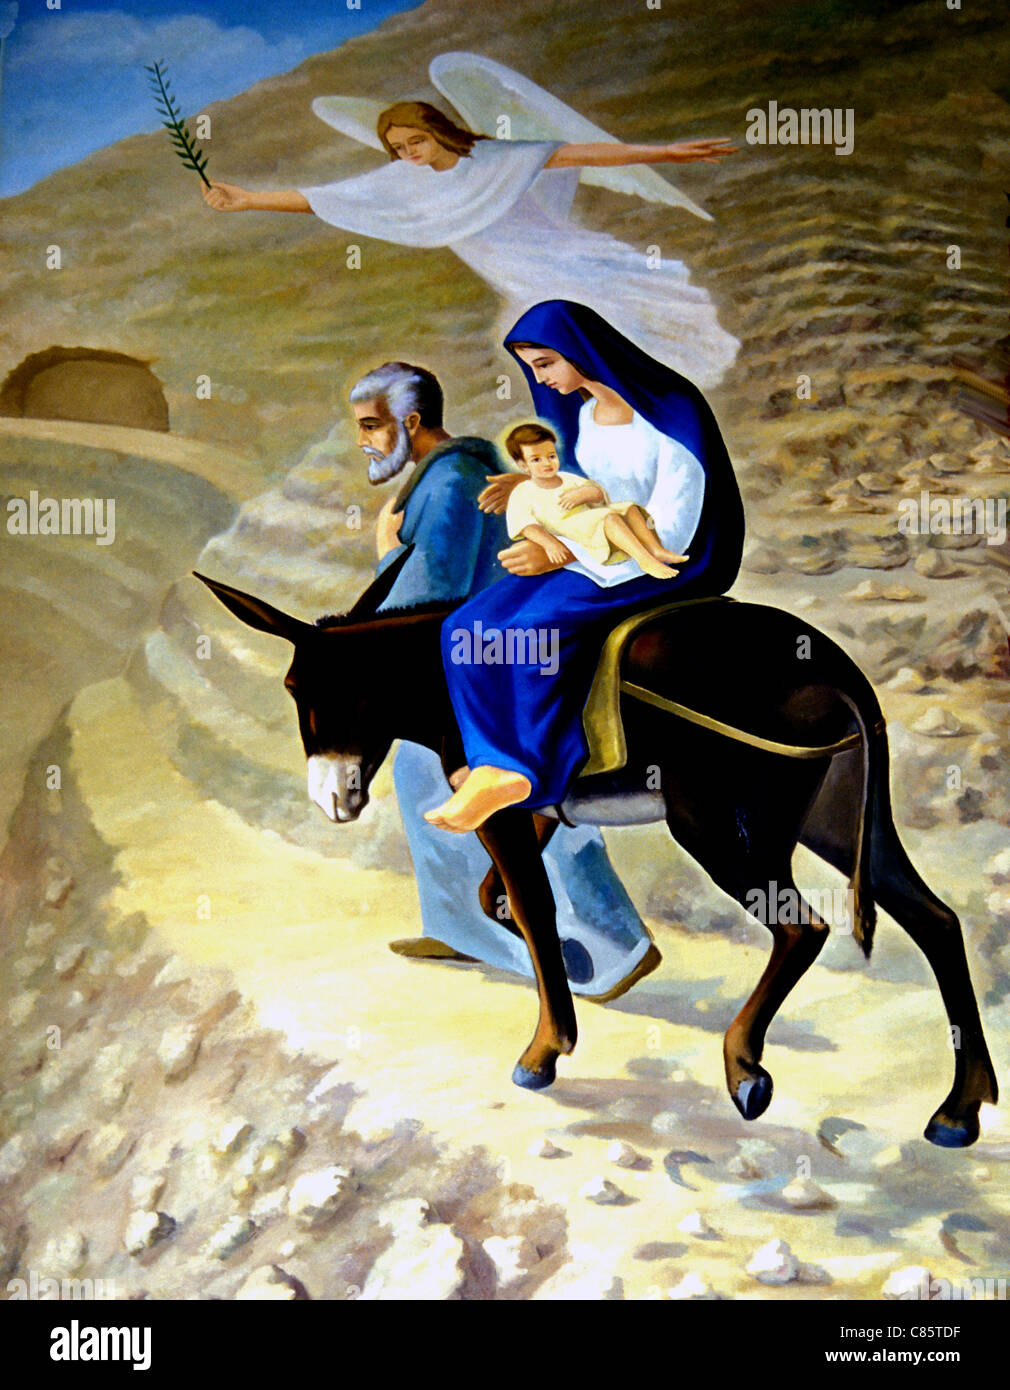 Mural of the travels of the Holy Family in Egypt, Joseph, Mary riding a donkey and Jesus - Stock Image